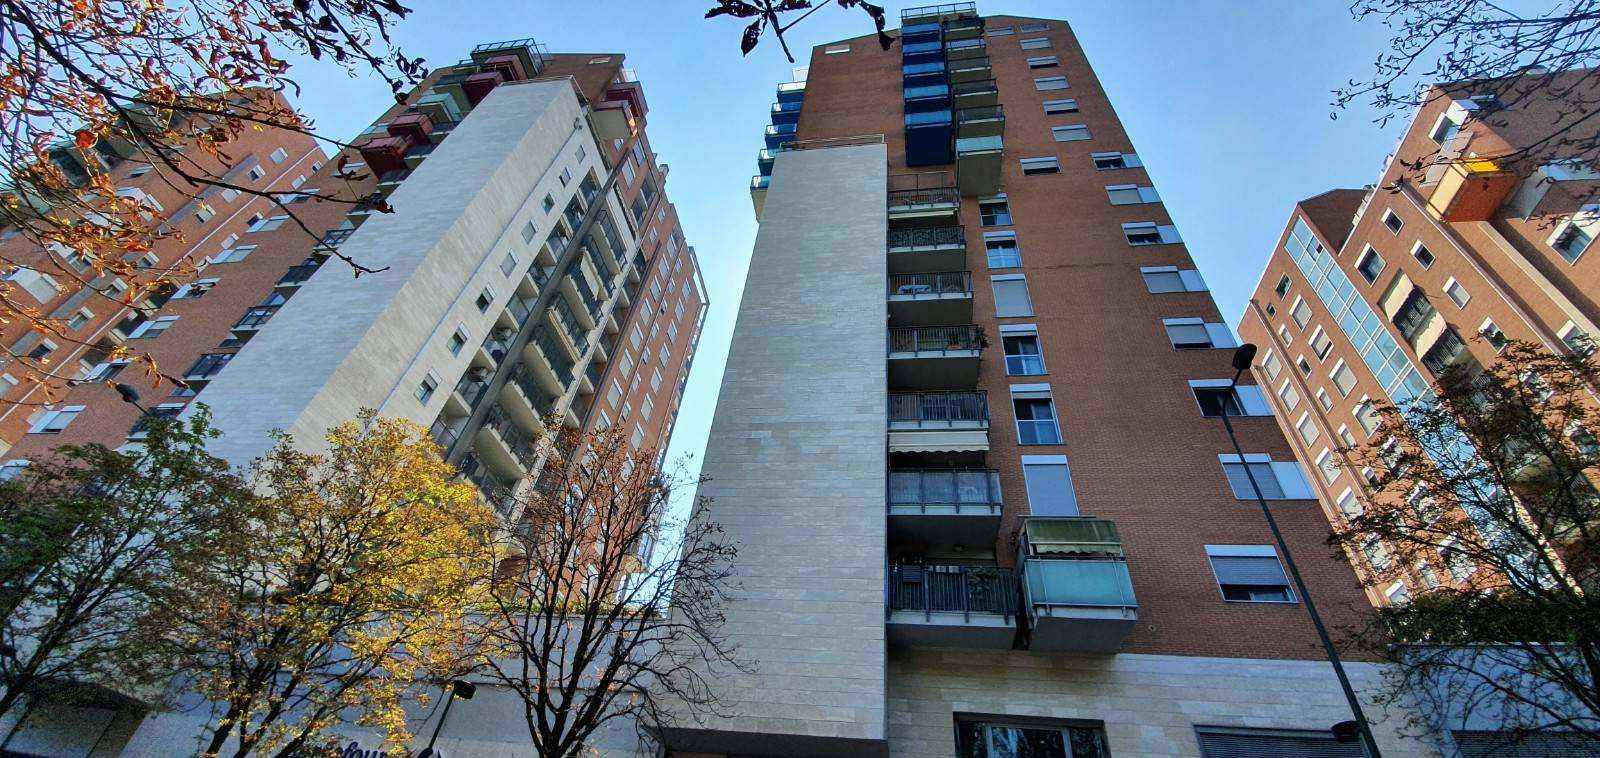 SESTO SAN GIOVANNI, Apartment for sale of 54 Sq. mt., Good condition, Heating Centralized, Energetic class: C, Epi: 81,8 kwh/m2 year, placed at 1° on